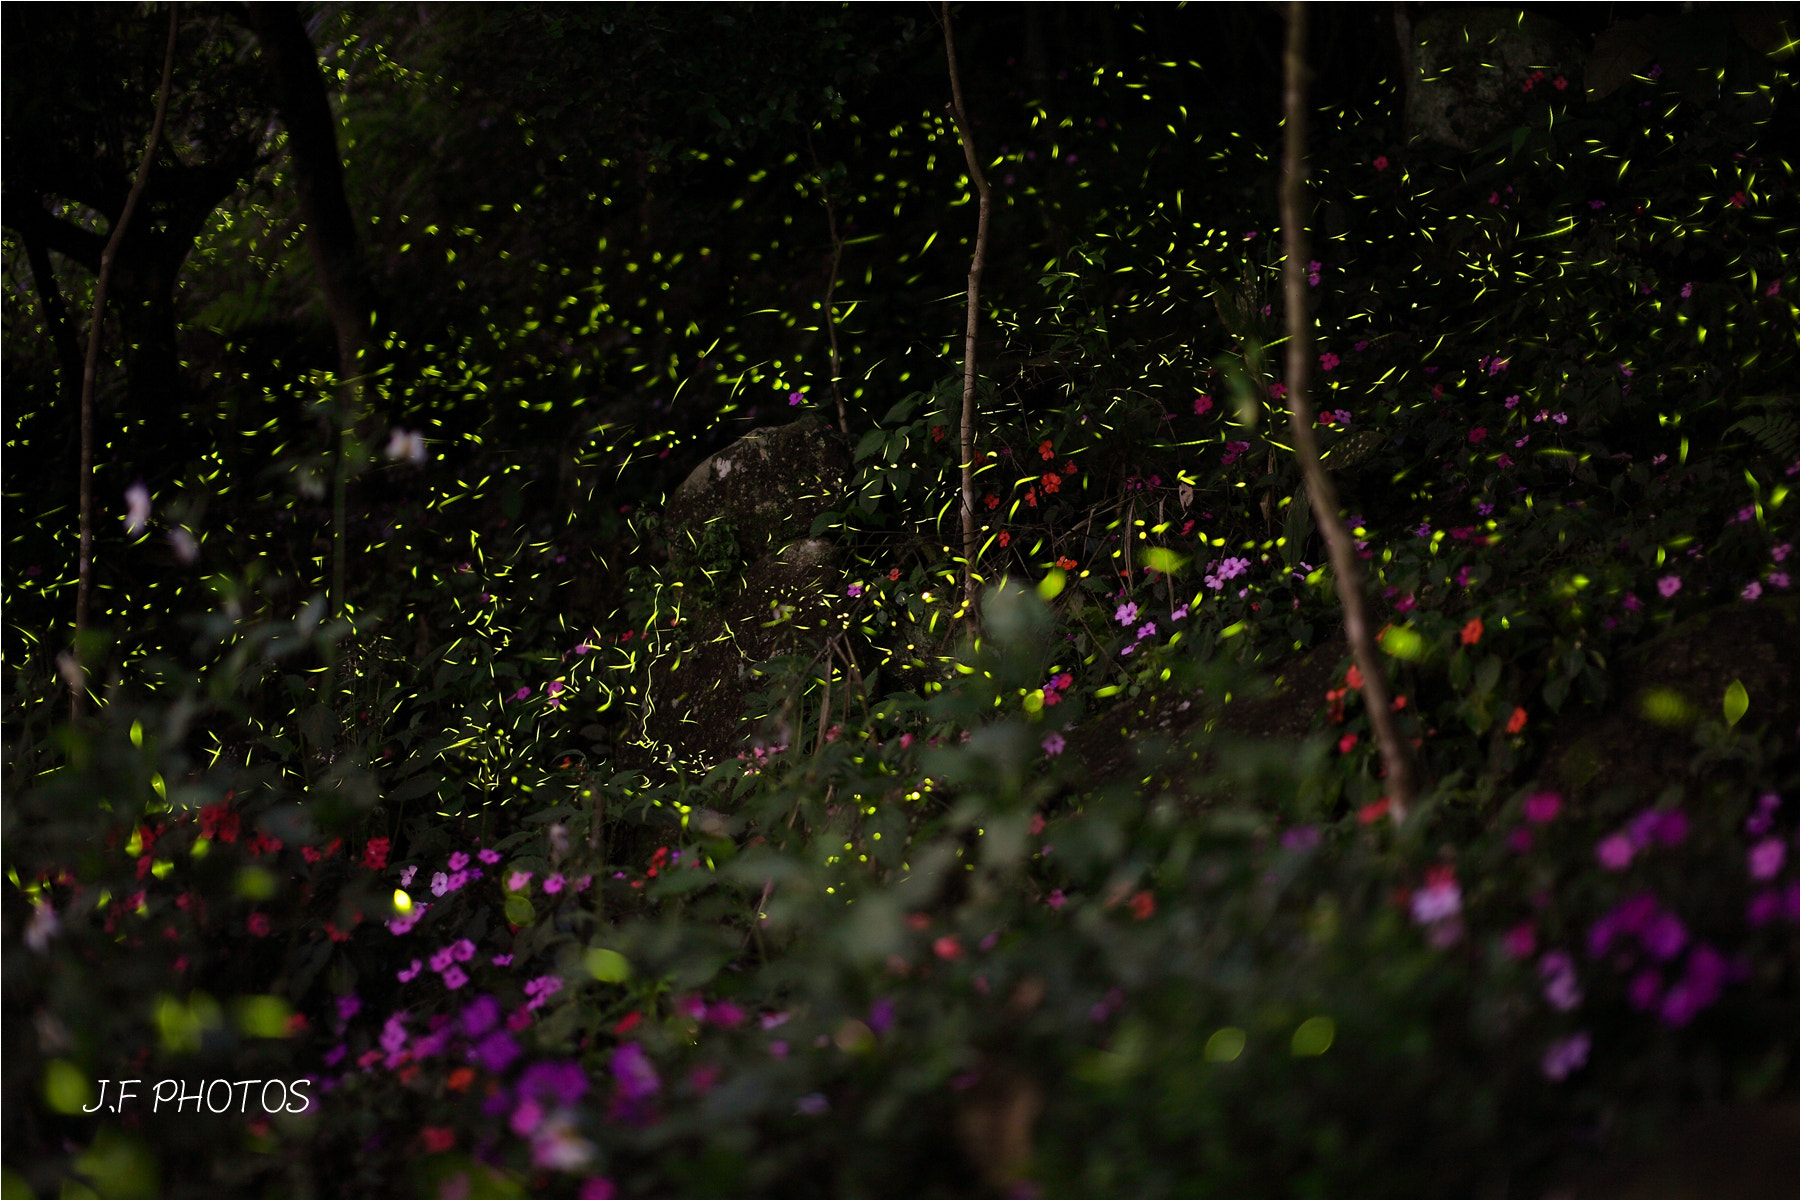 Photograph Firefly by Jeff Chiu on 500px